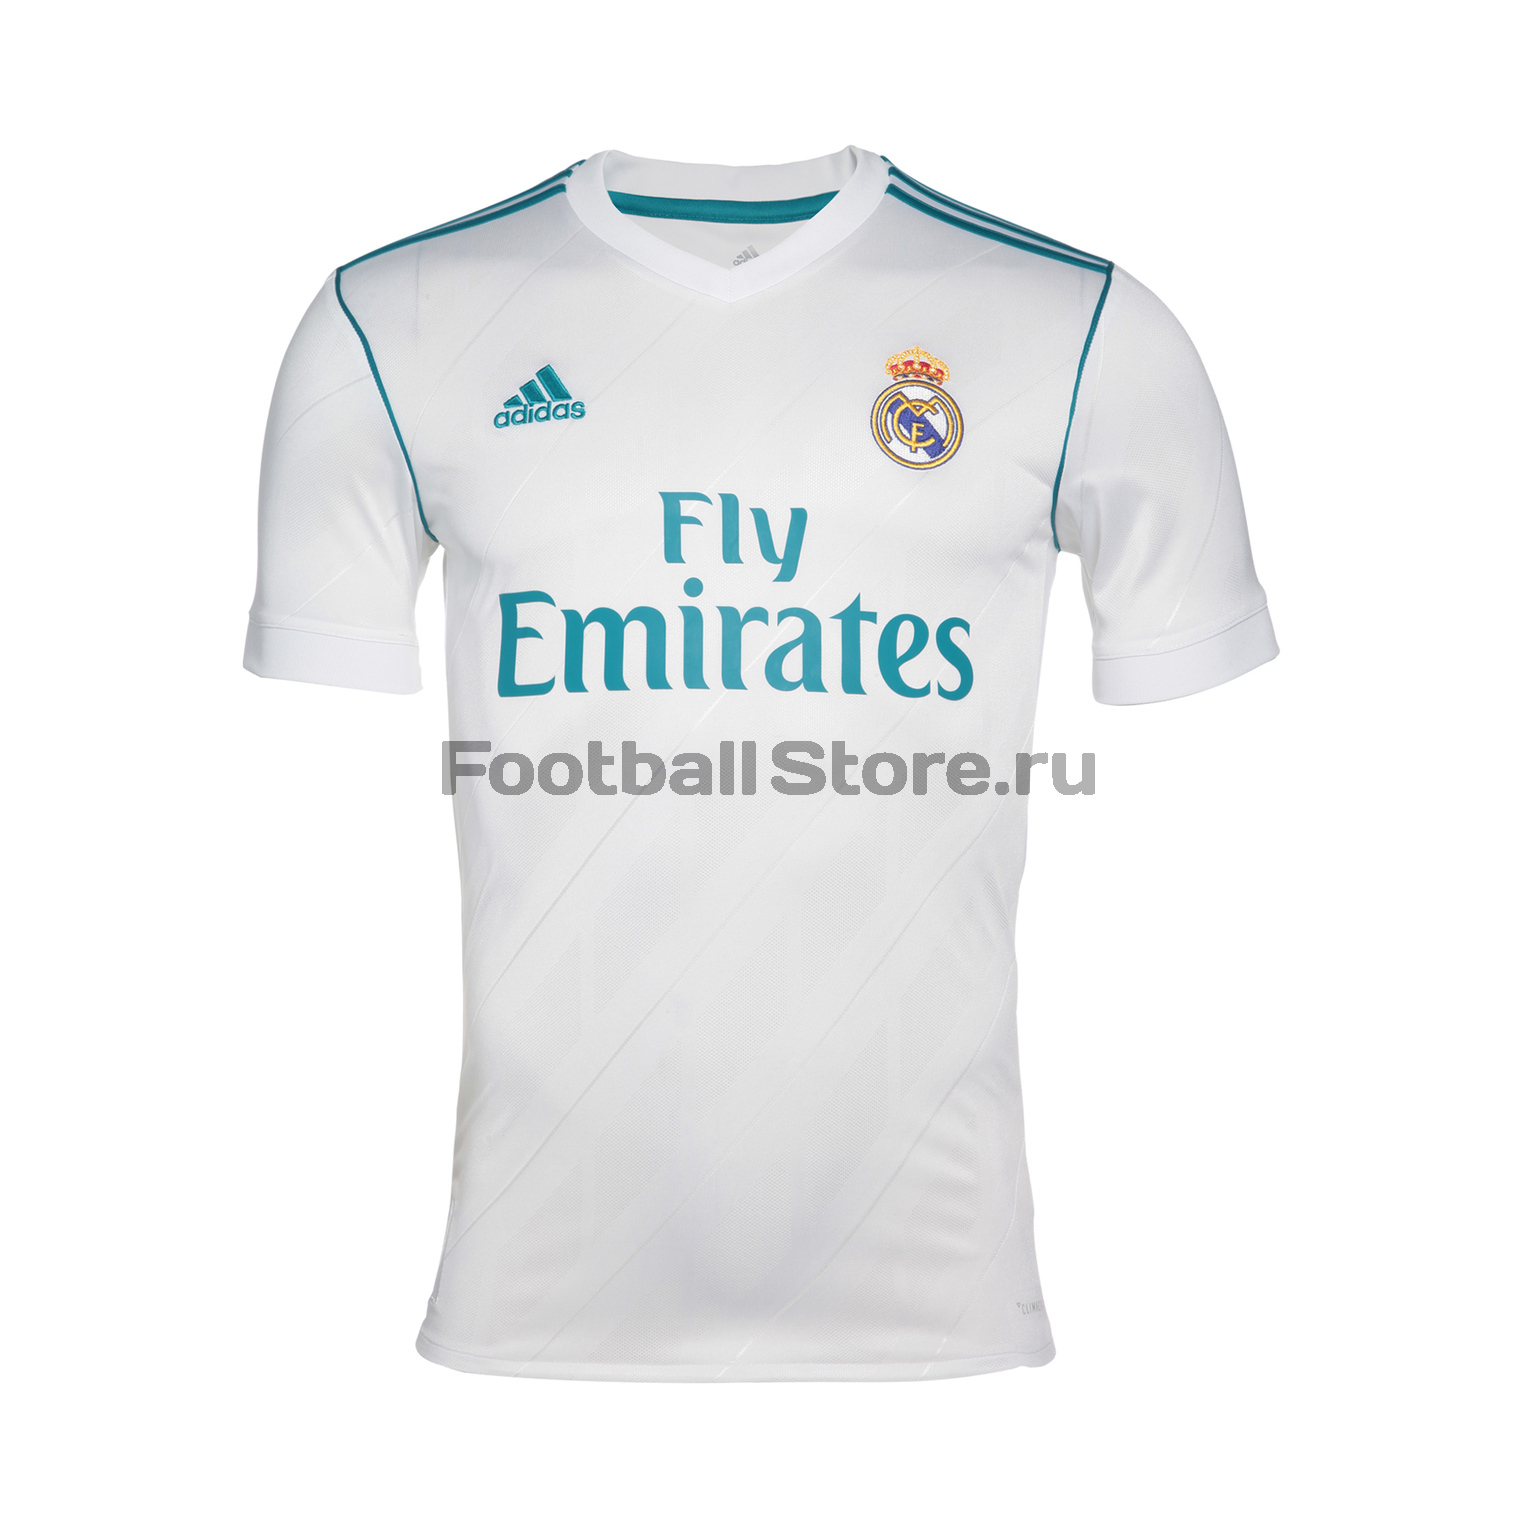 Real Madrid Adidas Футболка игровая Adidas Real Madrid Home AZ8059 real madrid adidas свитер adidas real madrid euhybrid top bq7851